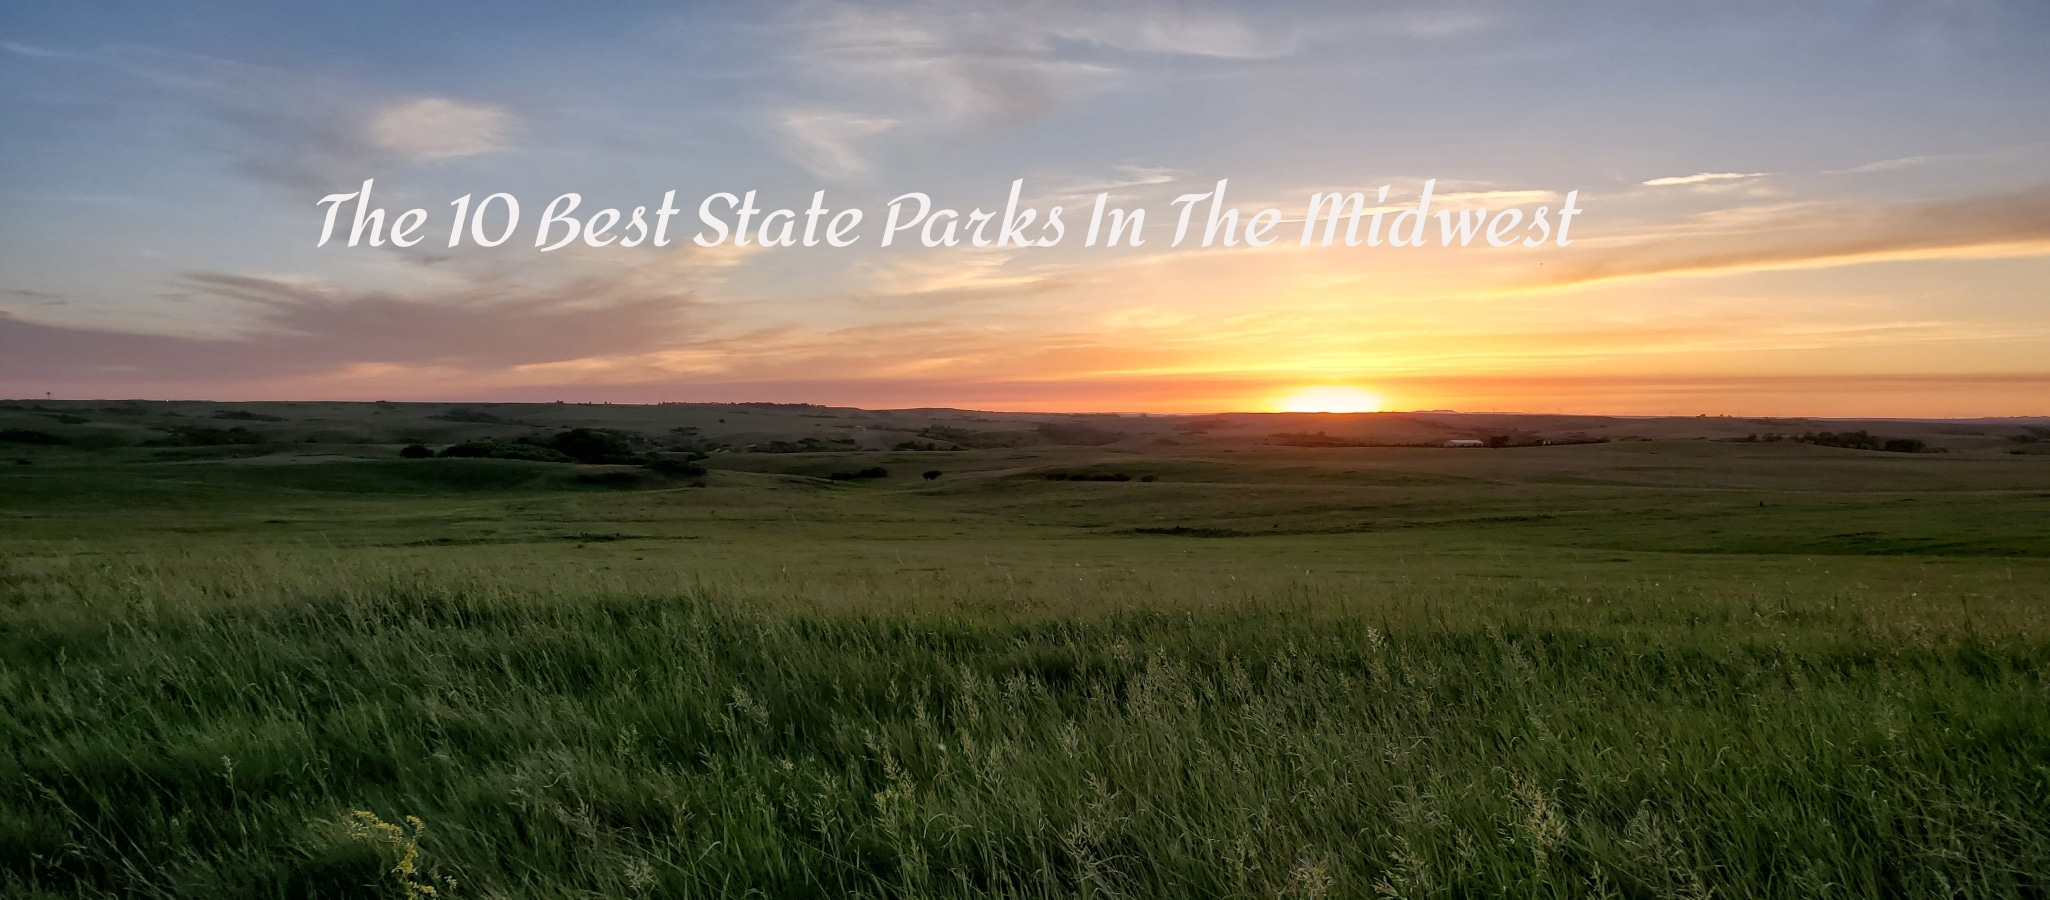 10 Best Midwest State Parks